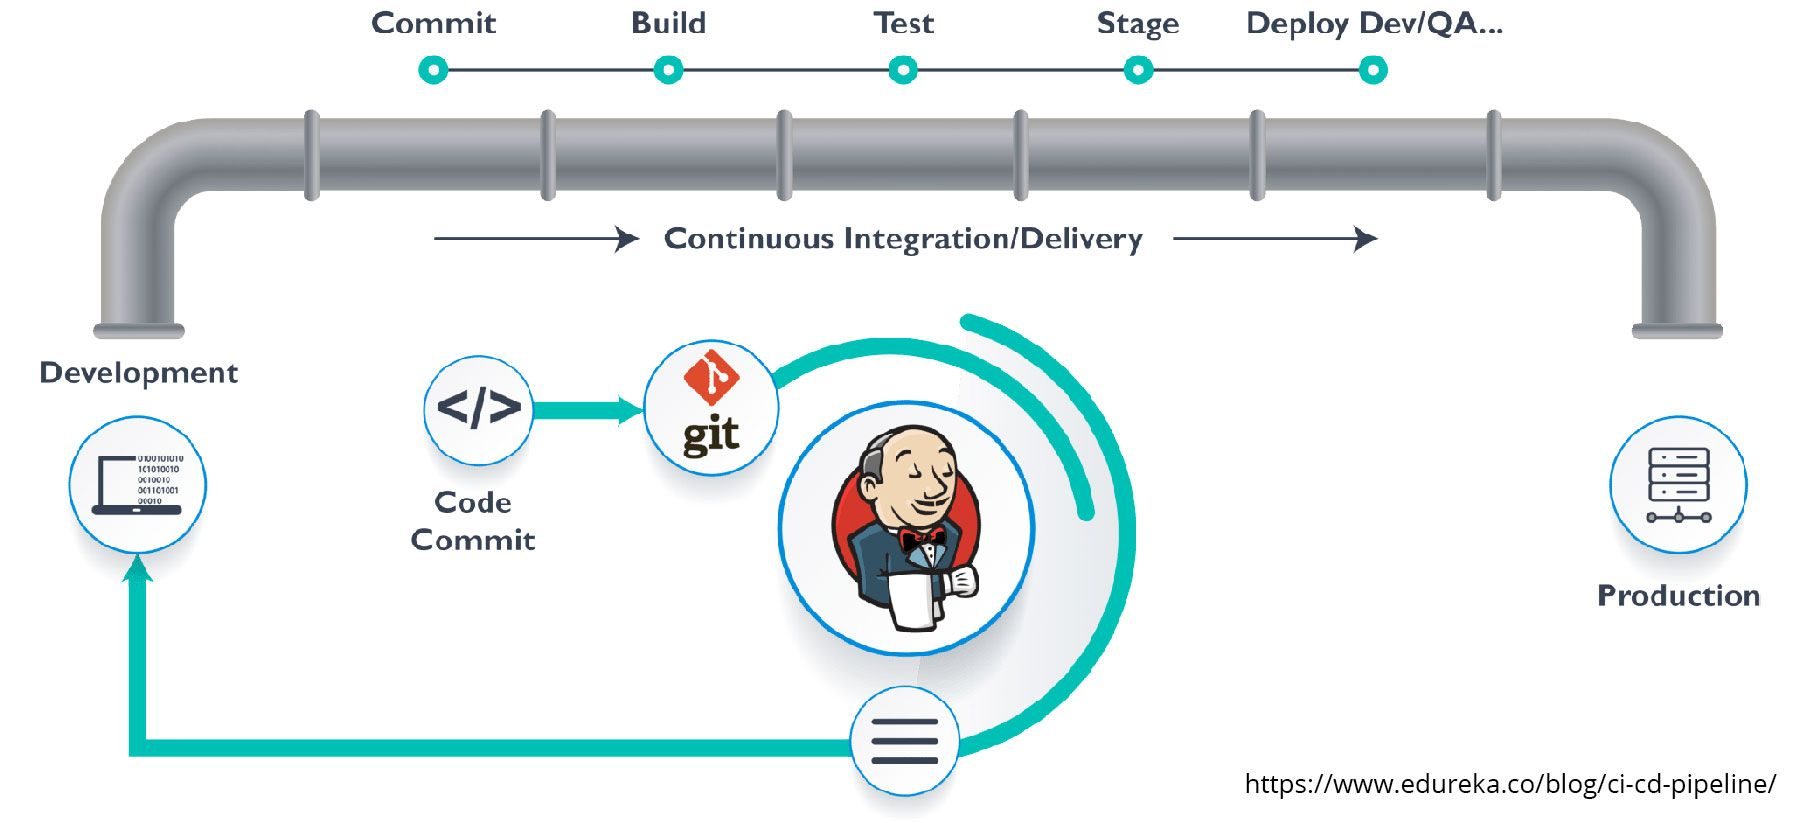 continuous-integration-continuous-deploy-1.jpg